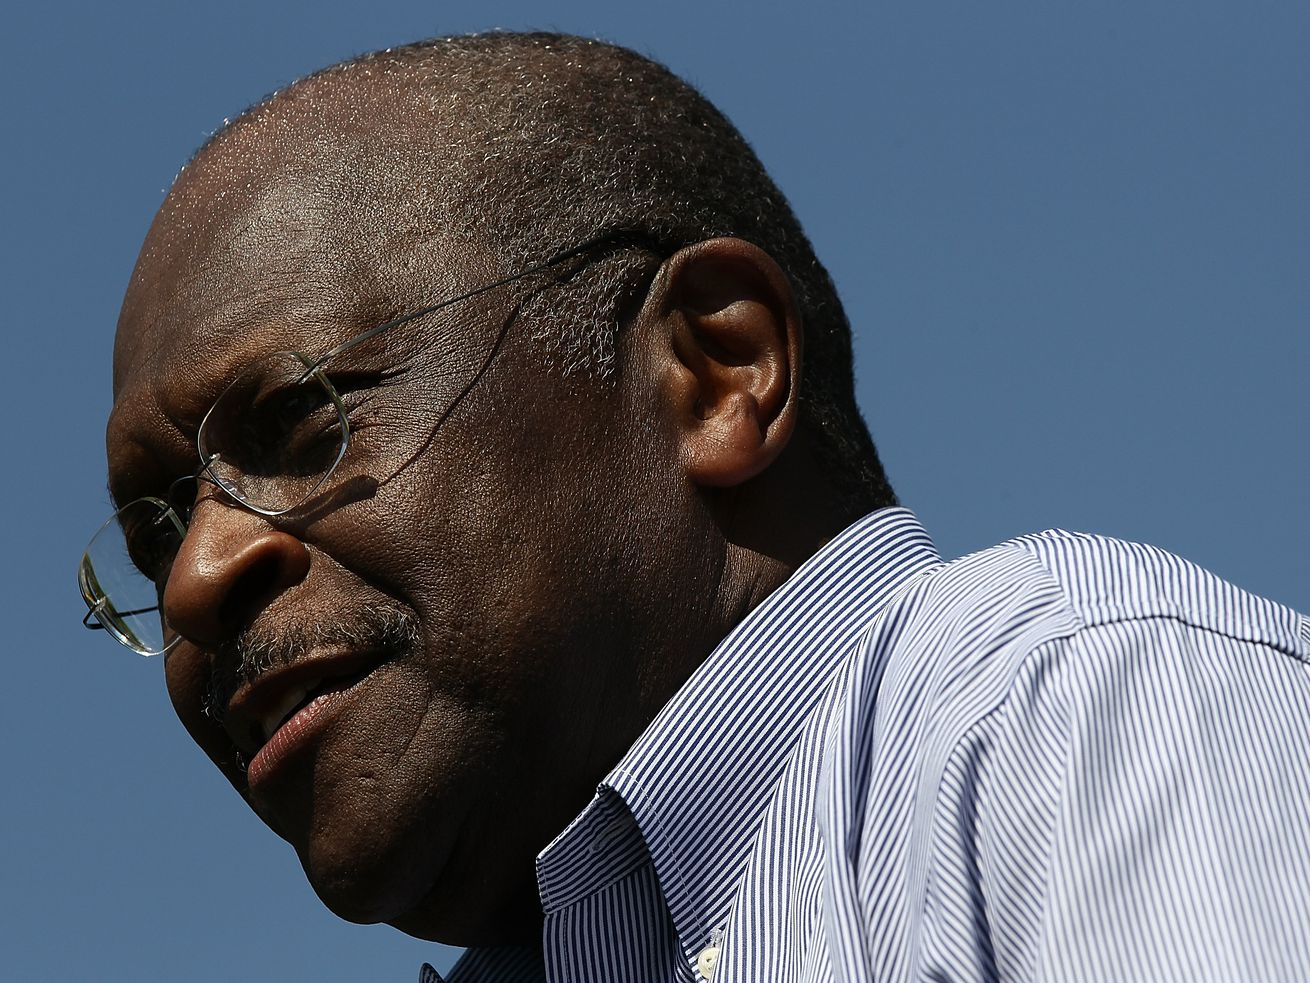 In 2012, Republican presidential candidate Herman Cain speaks at a campaign rally at the Capitol in Washington, DC.